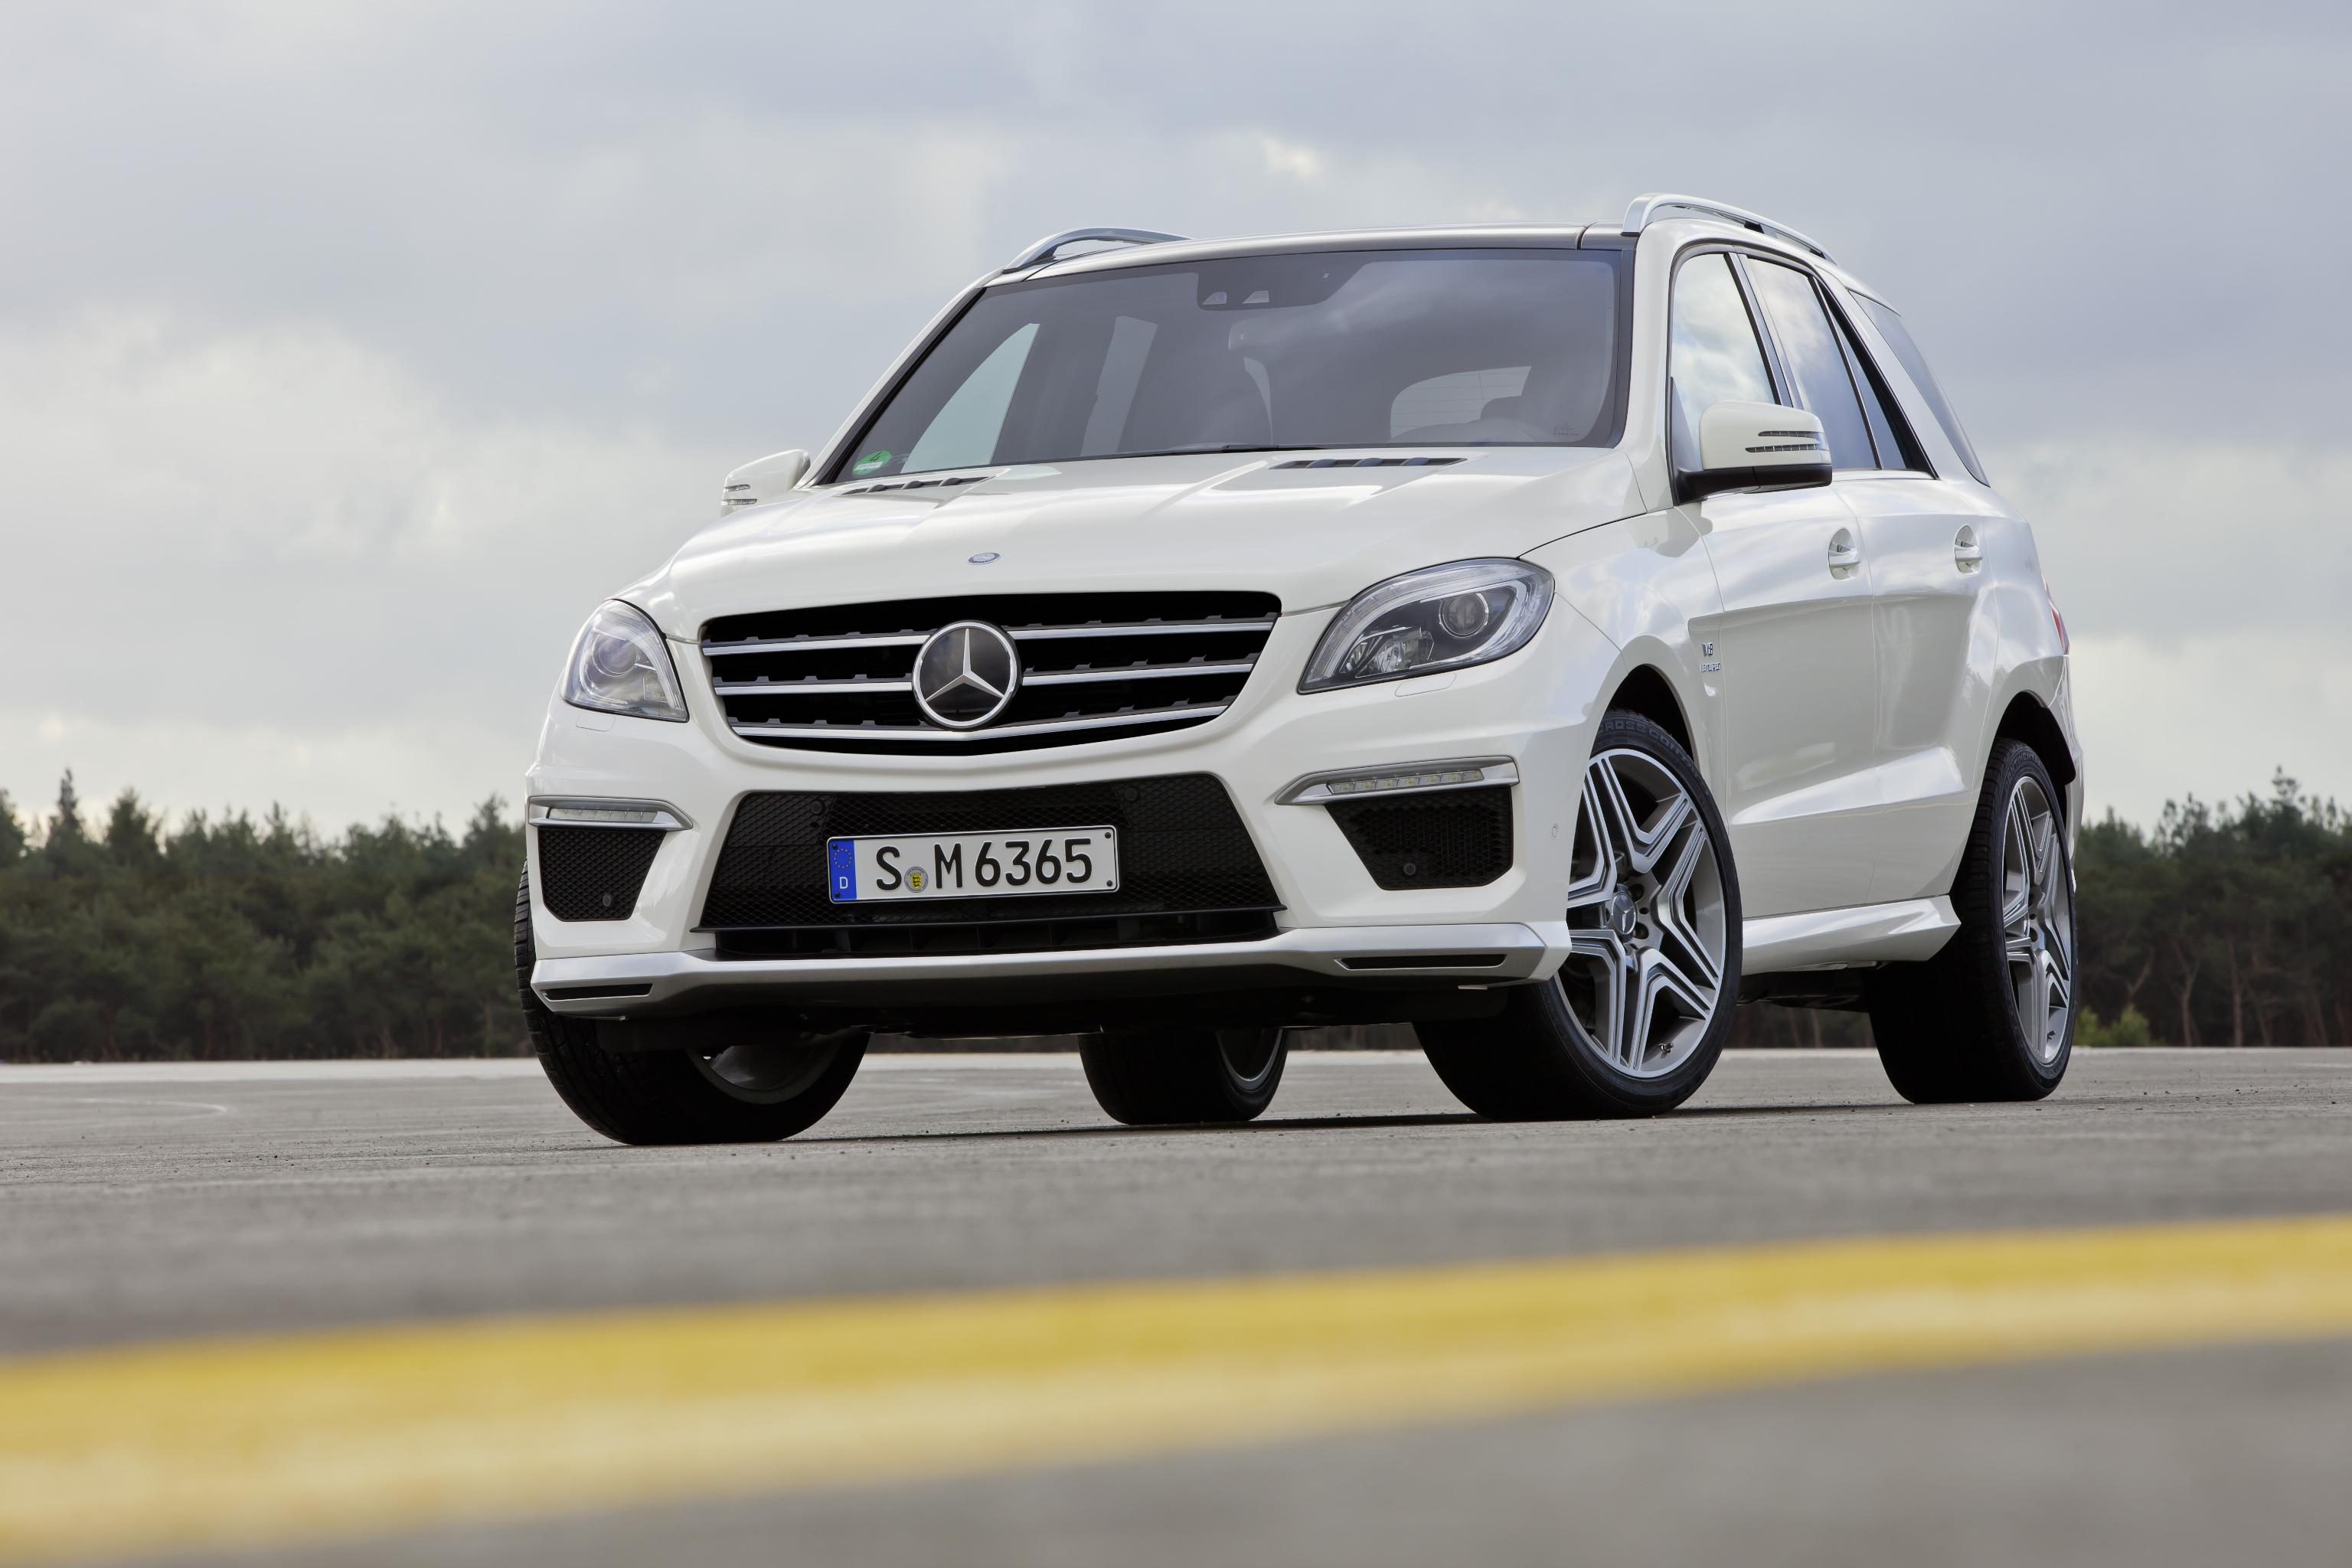 2012 mercedes ml 63 amg us price  u2013  95 865